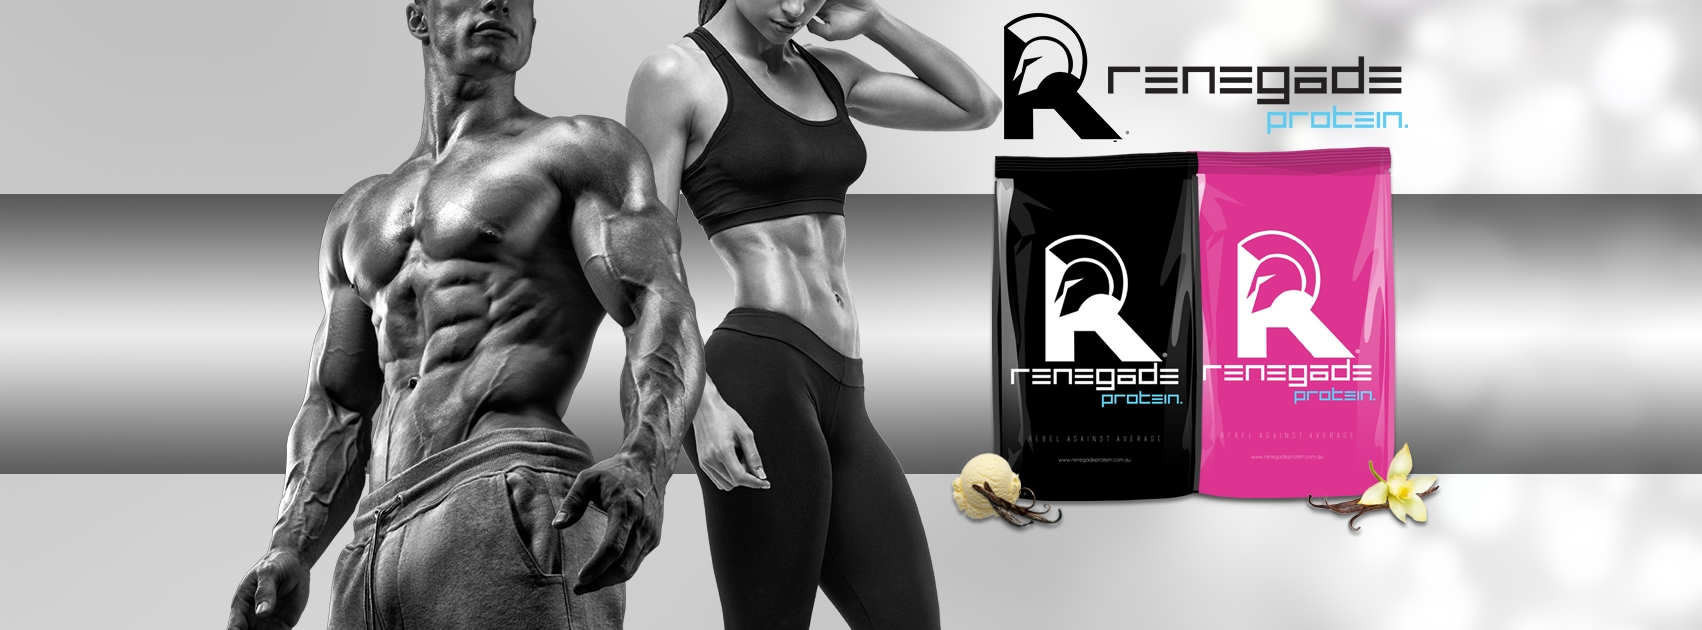 Renegade Protein (@renegadeprotein) Cover Image